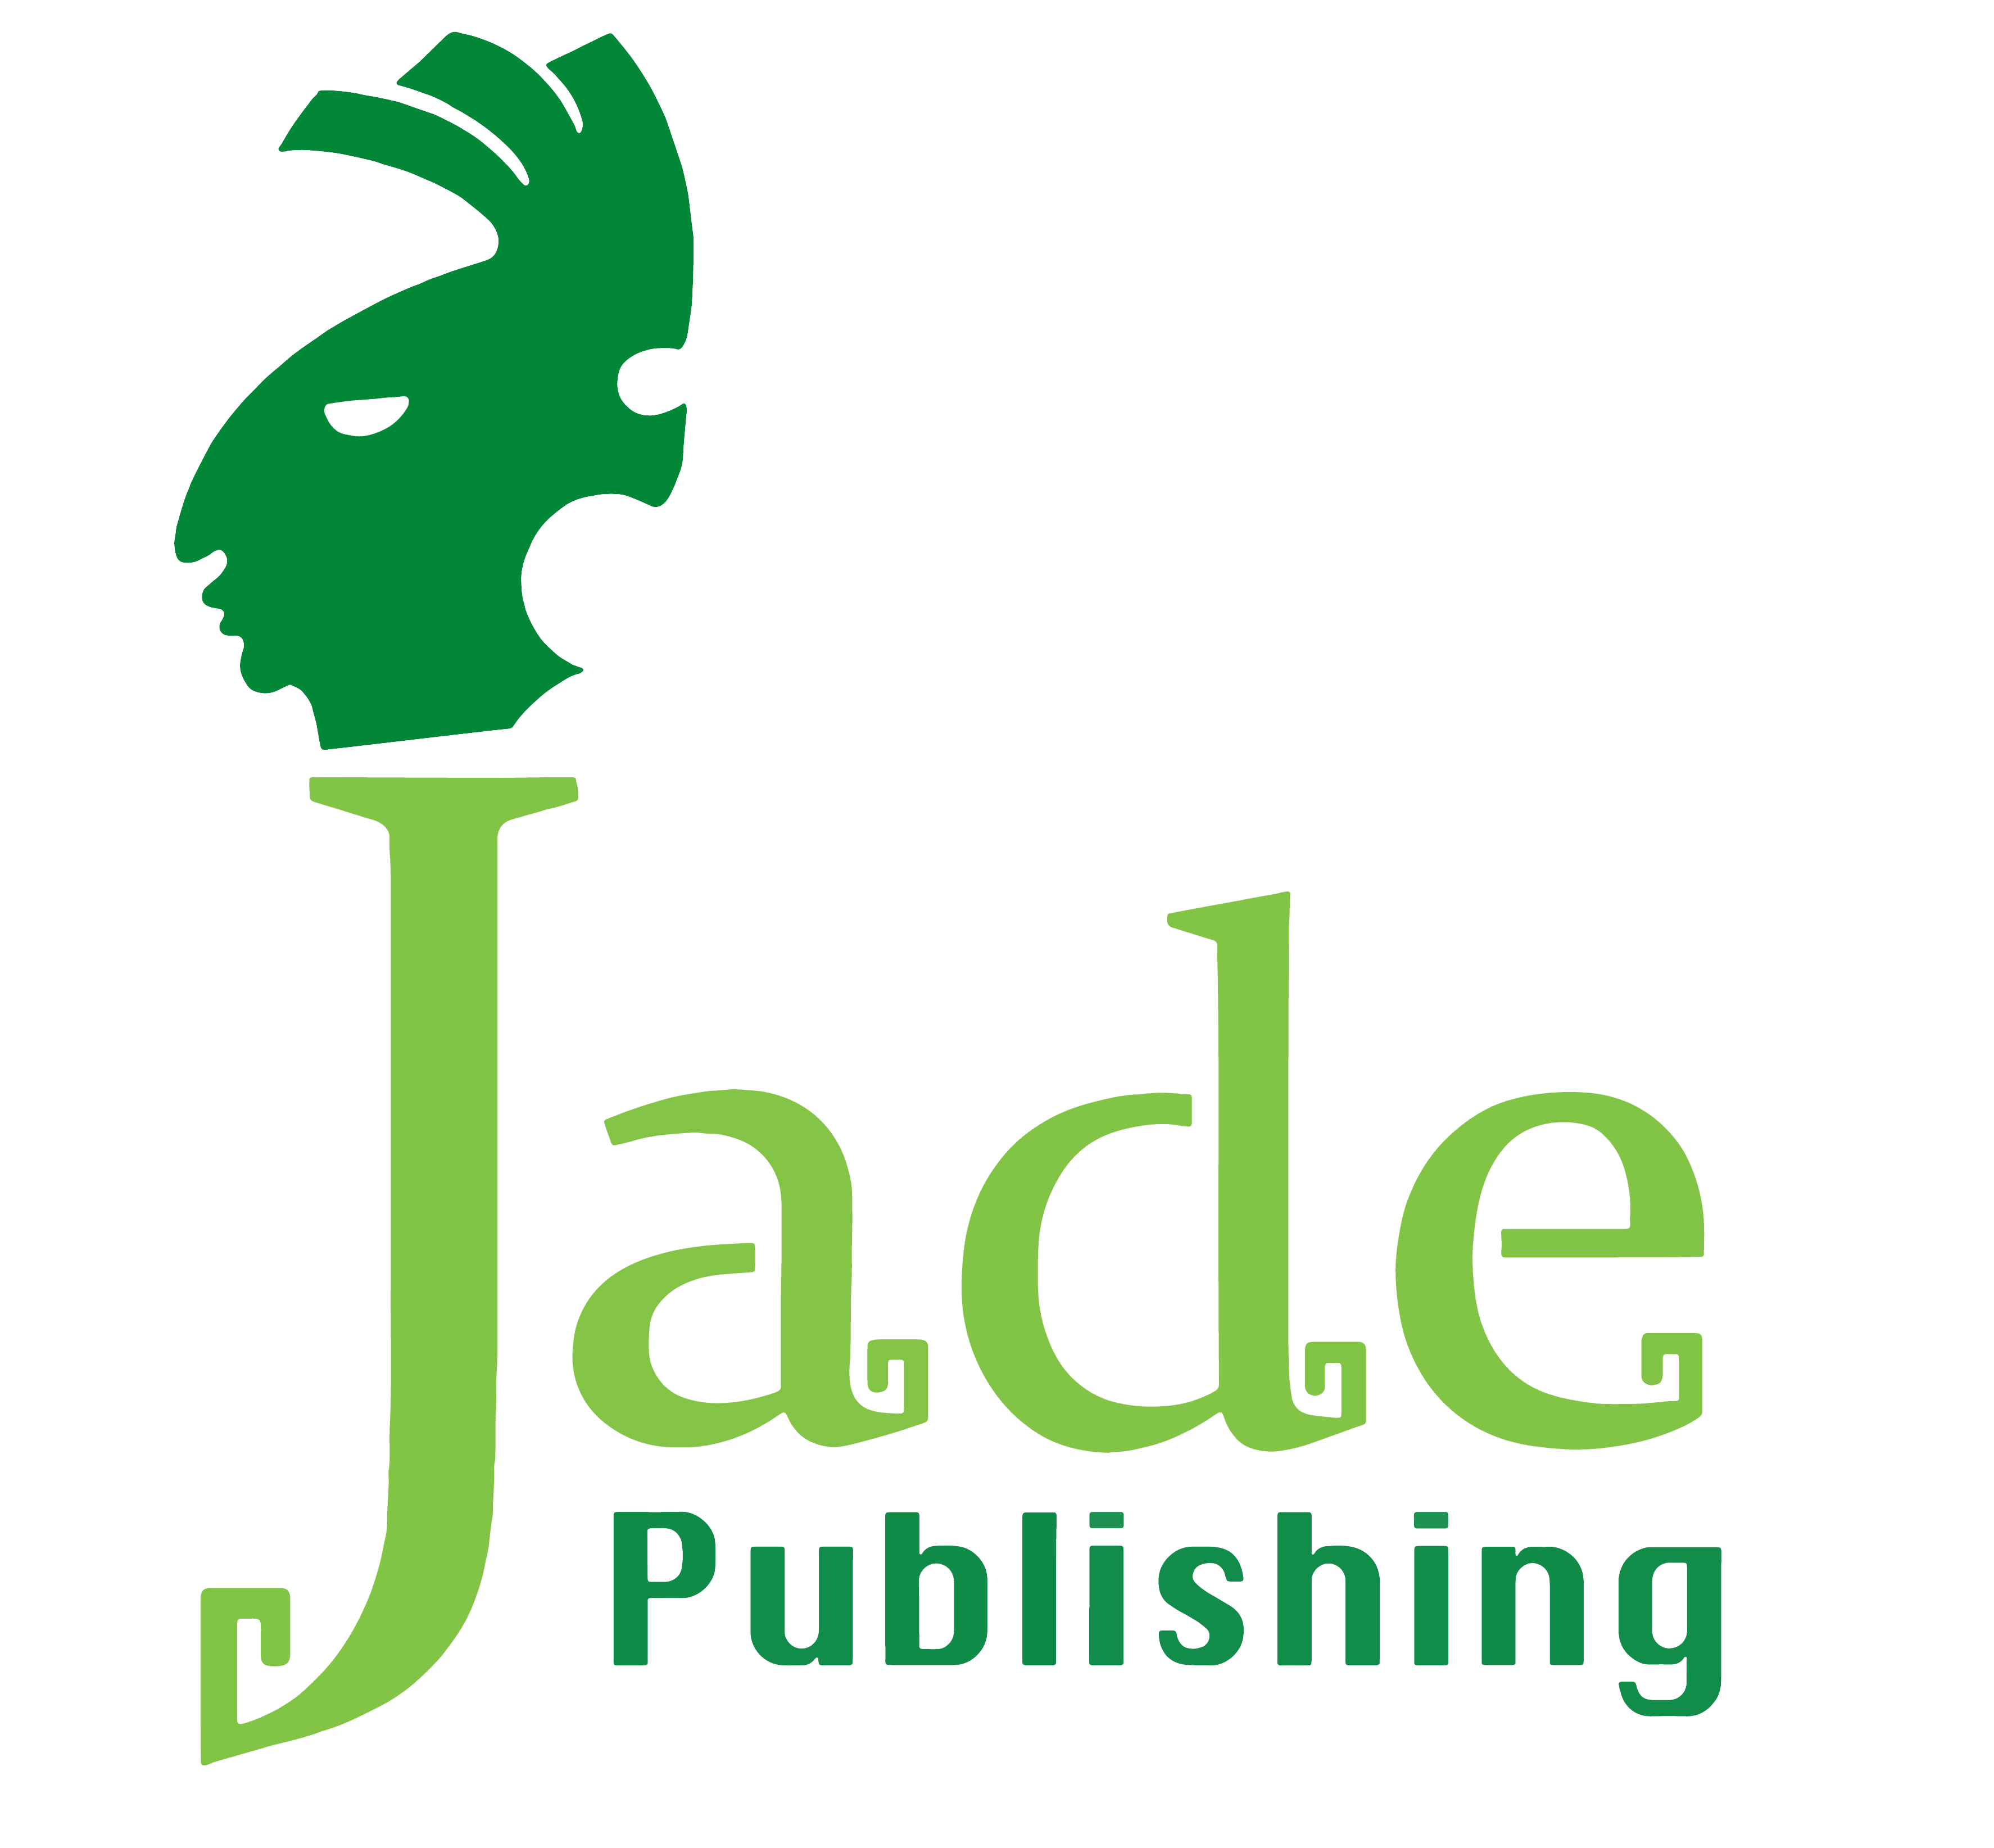 Jade Publishing